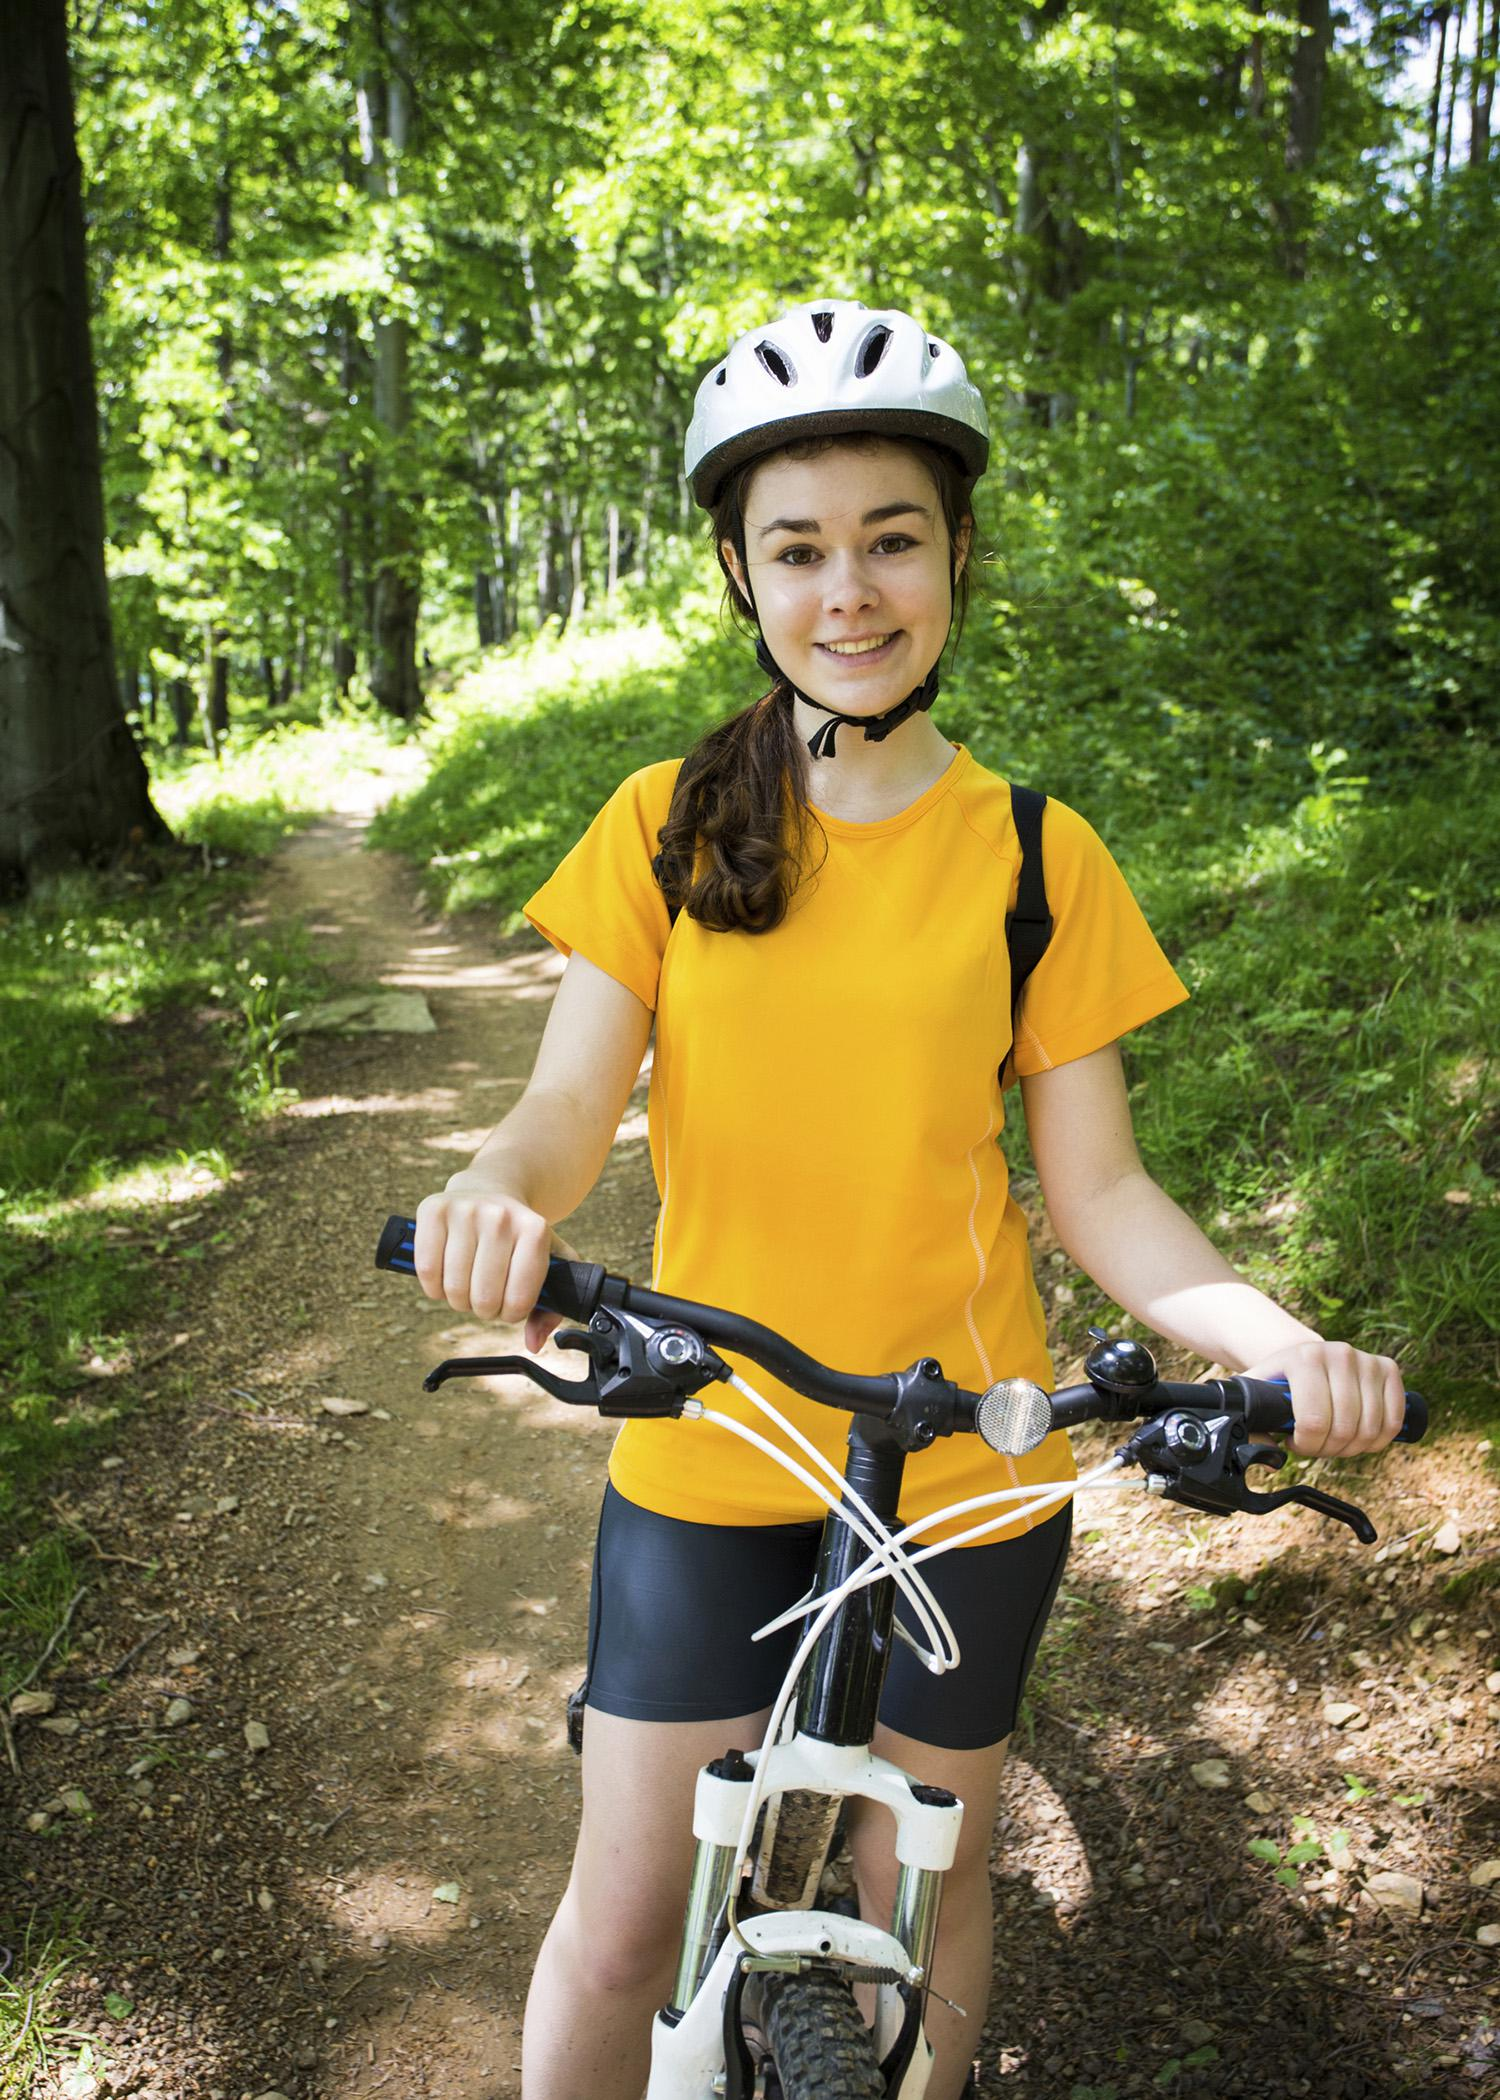 Bicycle helmets can mean the difference between life and death whether they are on toddlers in the driveway or on older riders on trails or roadways. (Photo by Getty Images/Thinkstock)